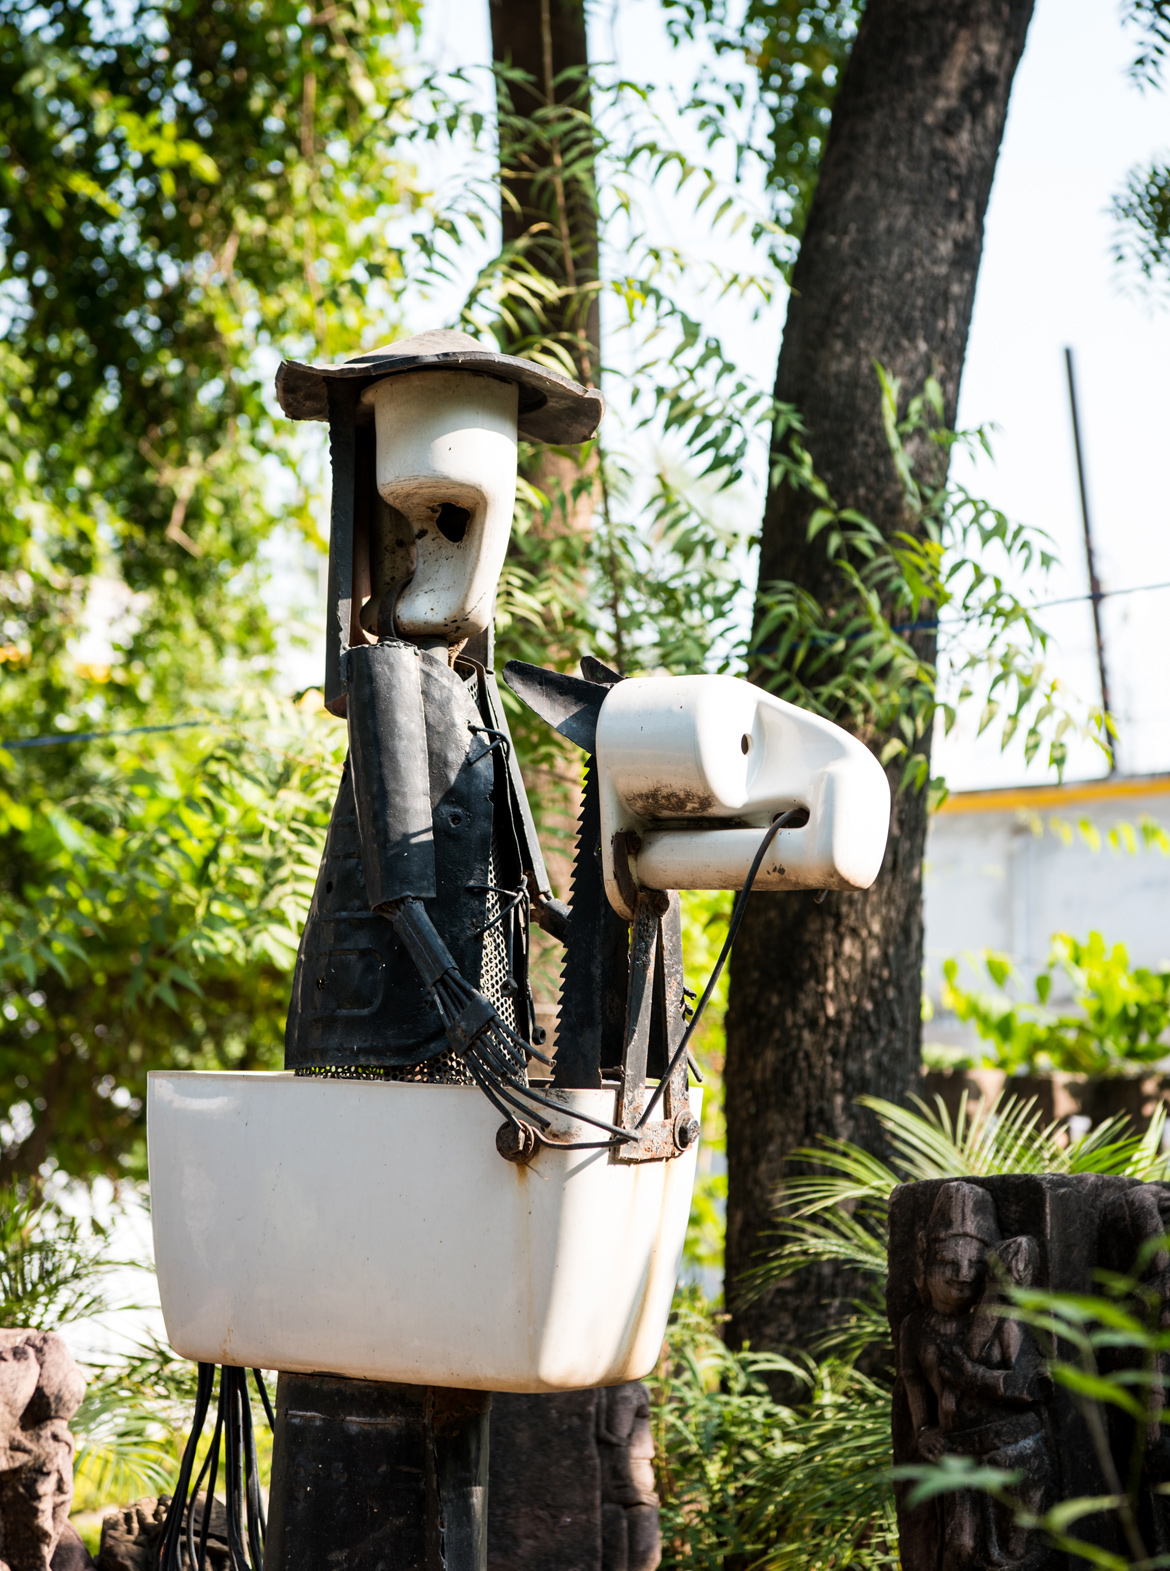 A sculpture made of iron waste and toilet seat at Maihar Heritage Home